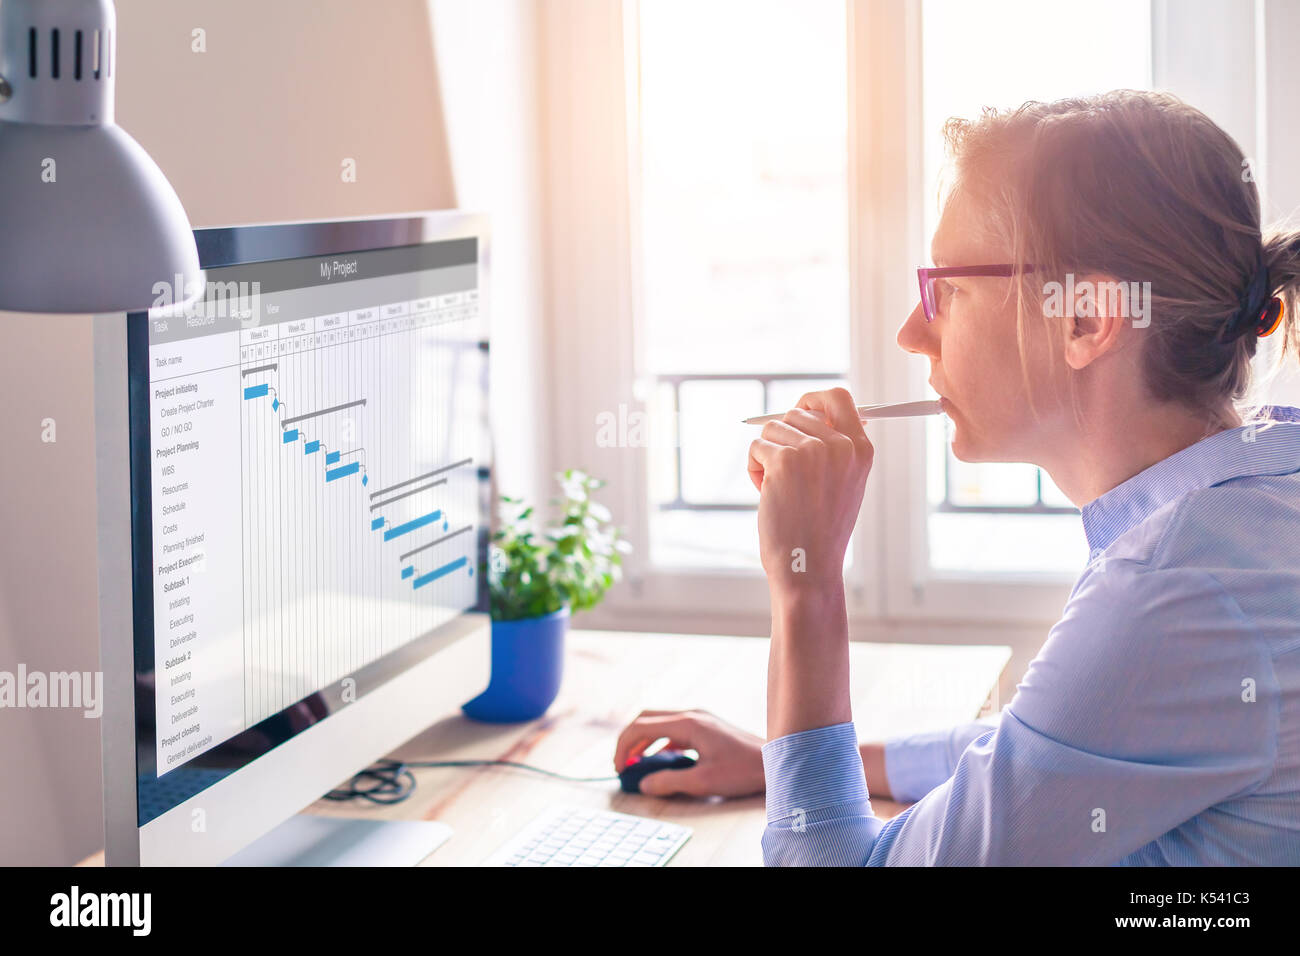 Female project manager using Gantt chart schedule to organize tasks and update planning on computer screen with software - Stock Image